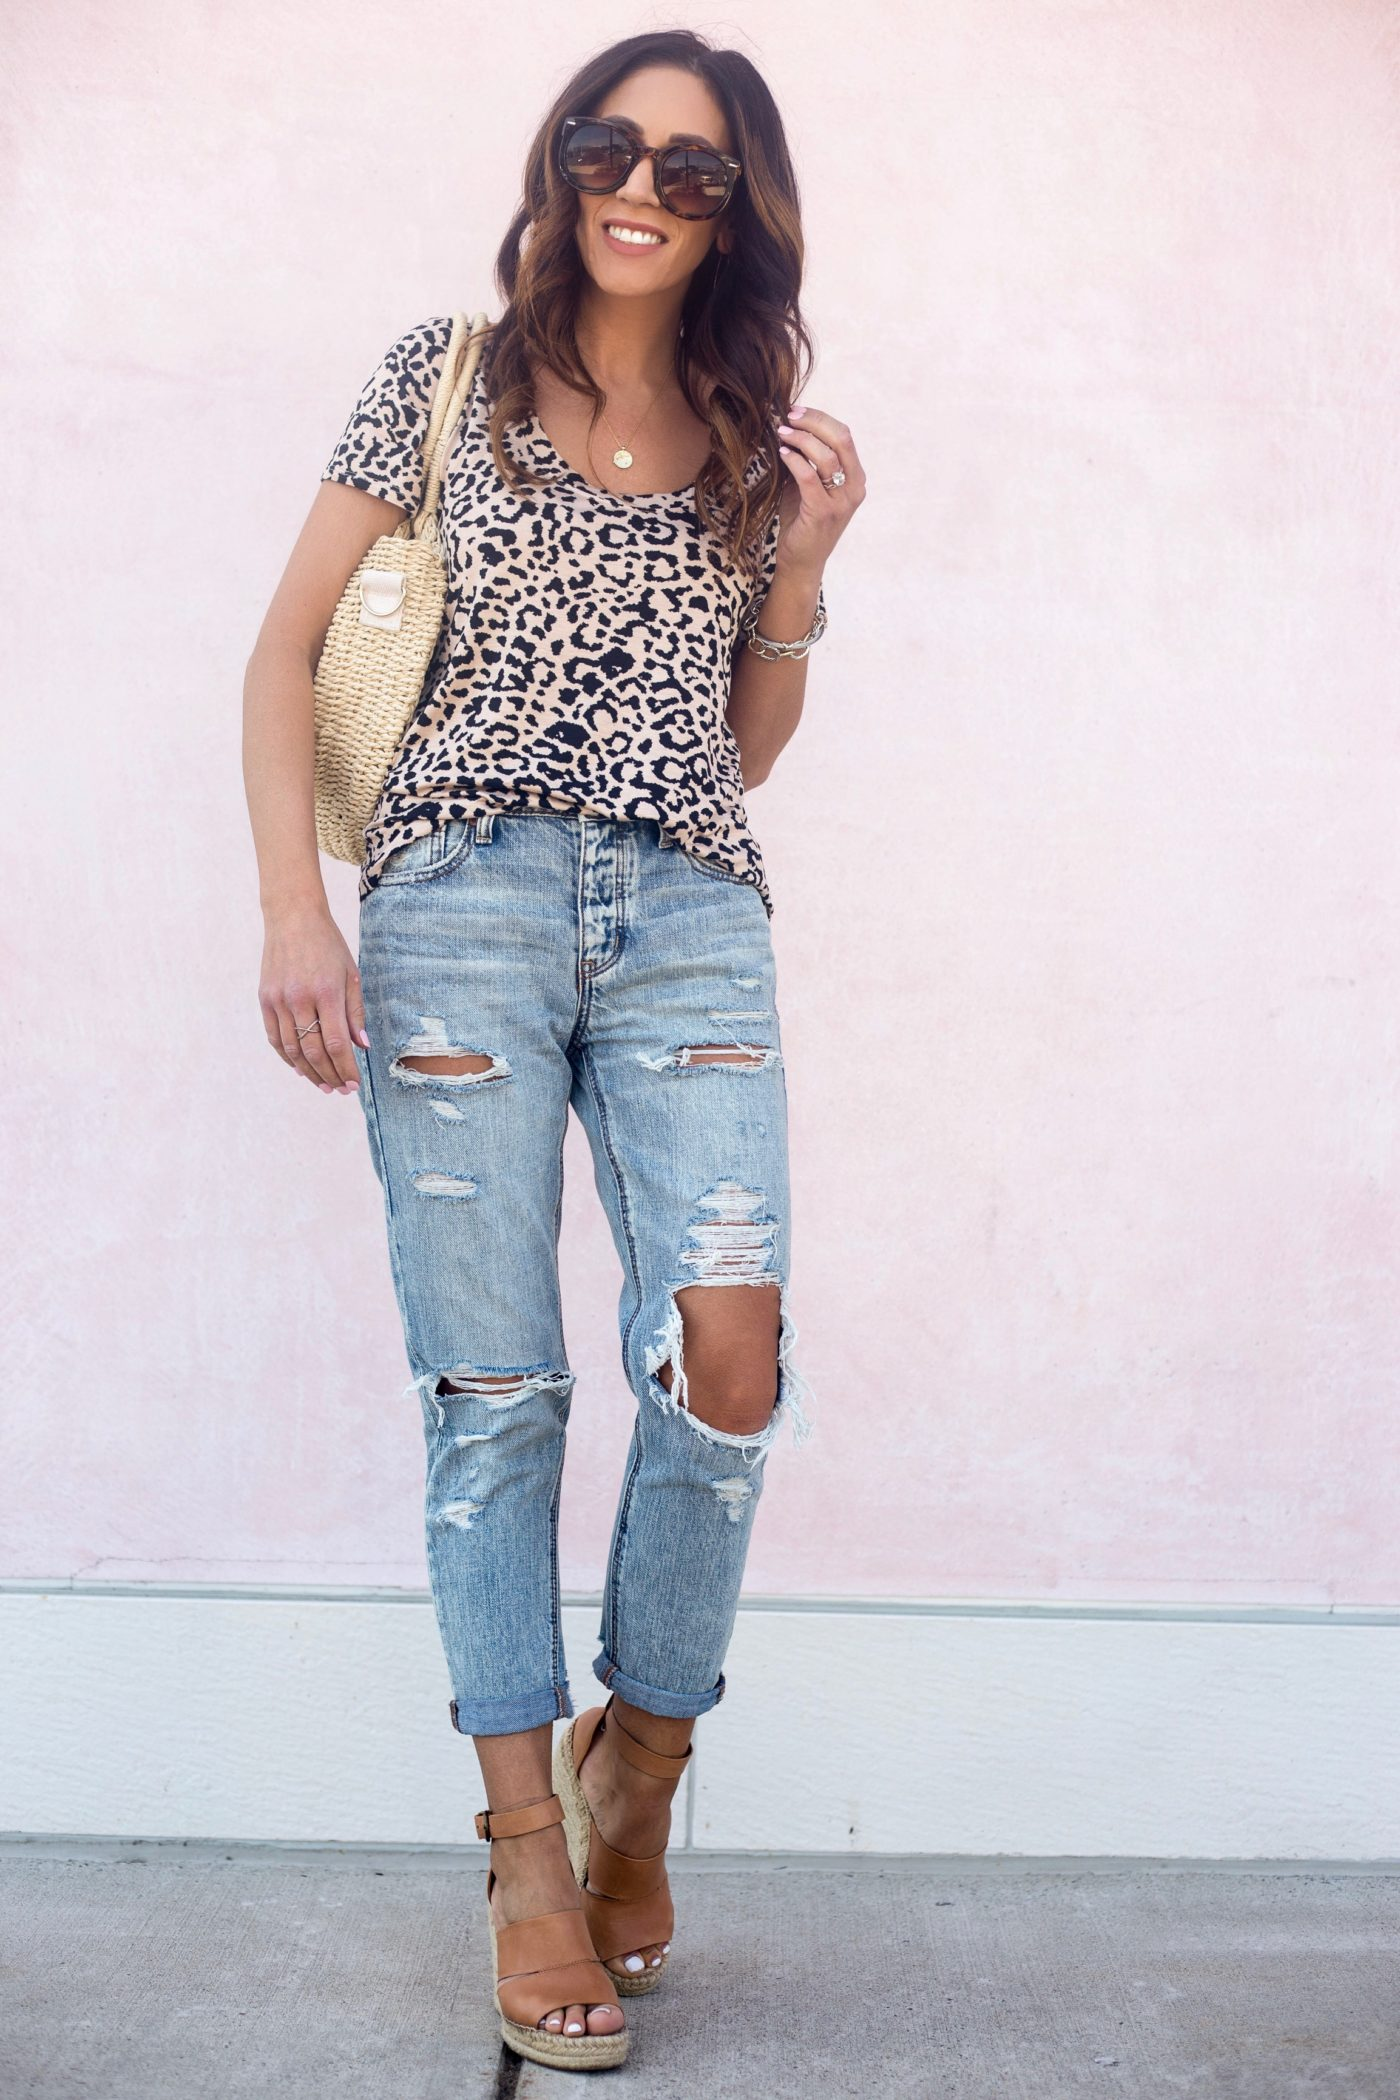 My casual spring style - Leopard tee